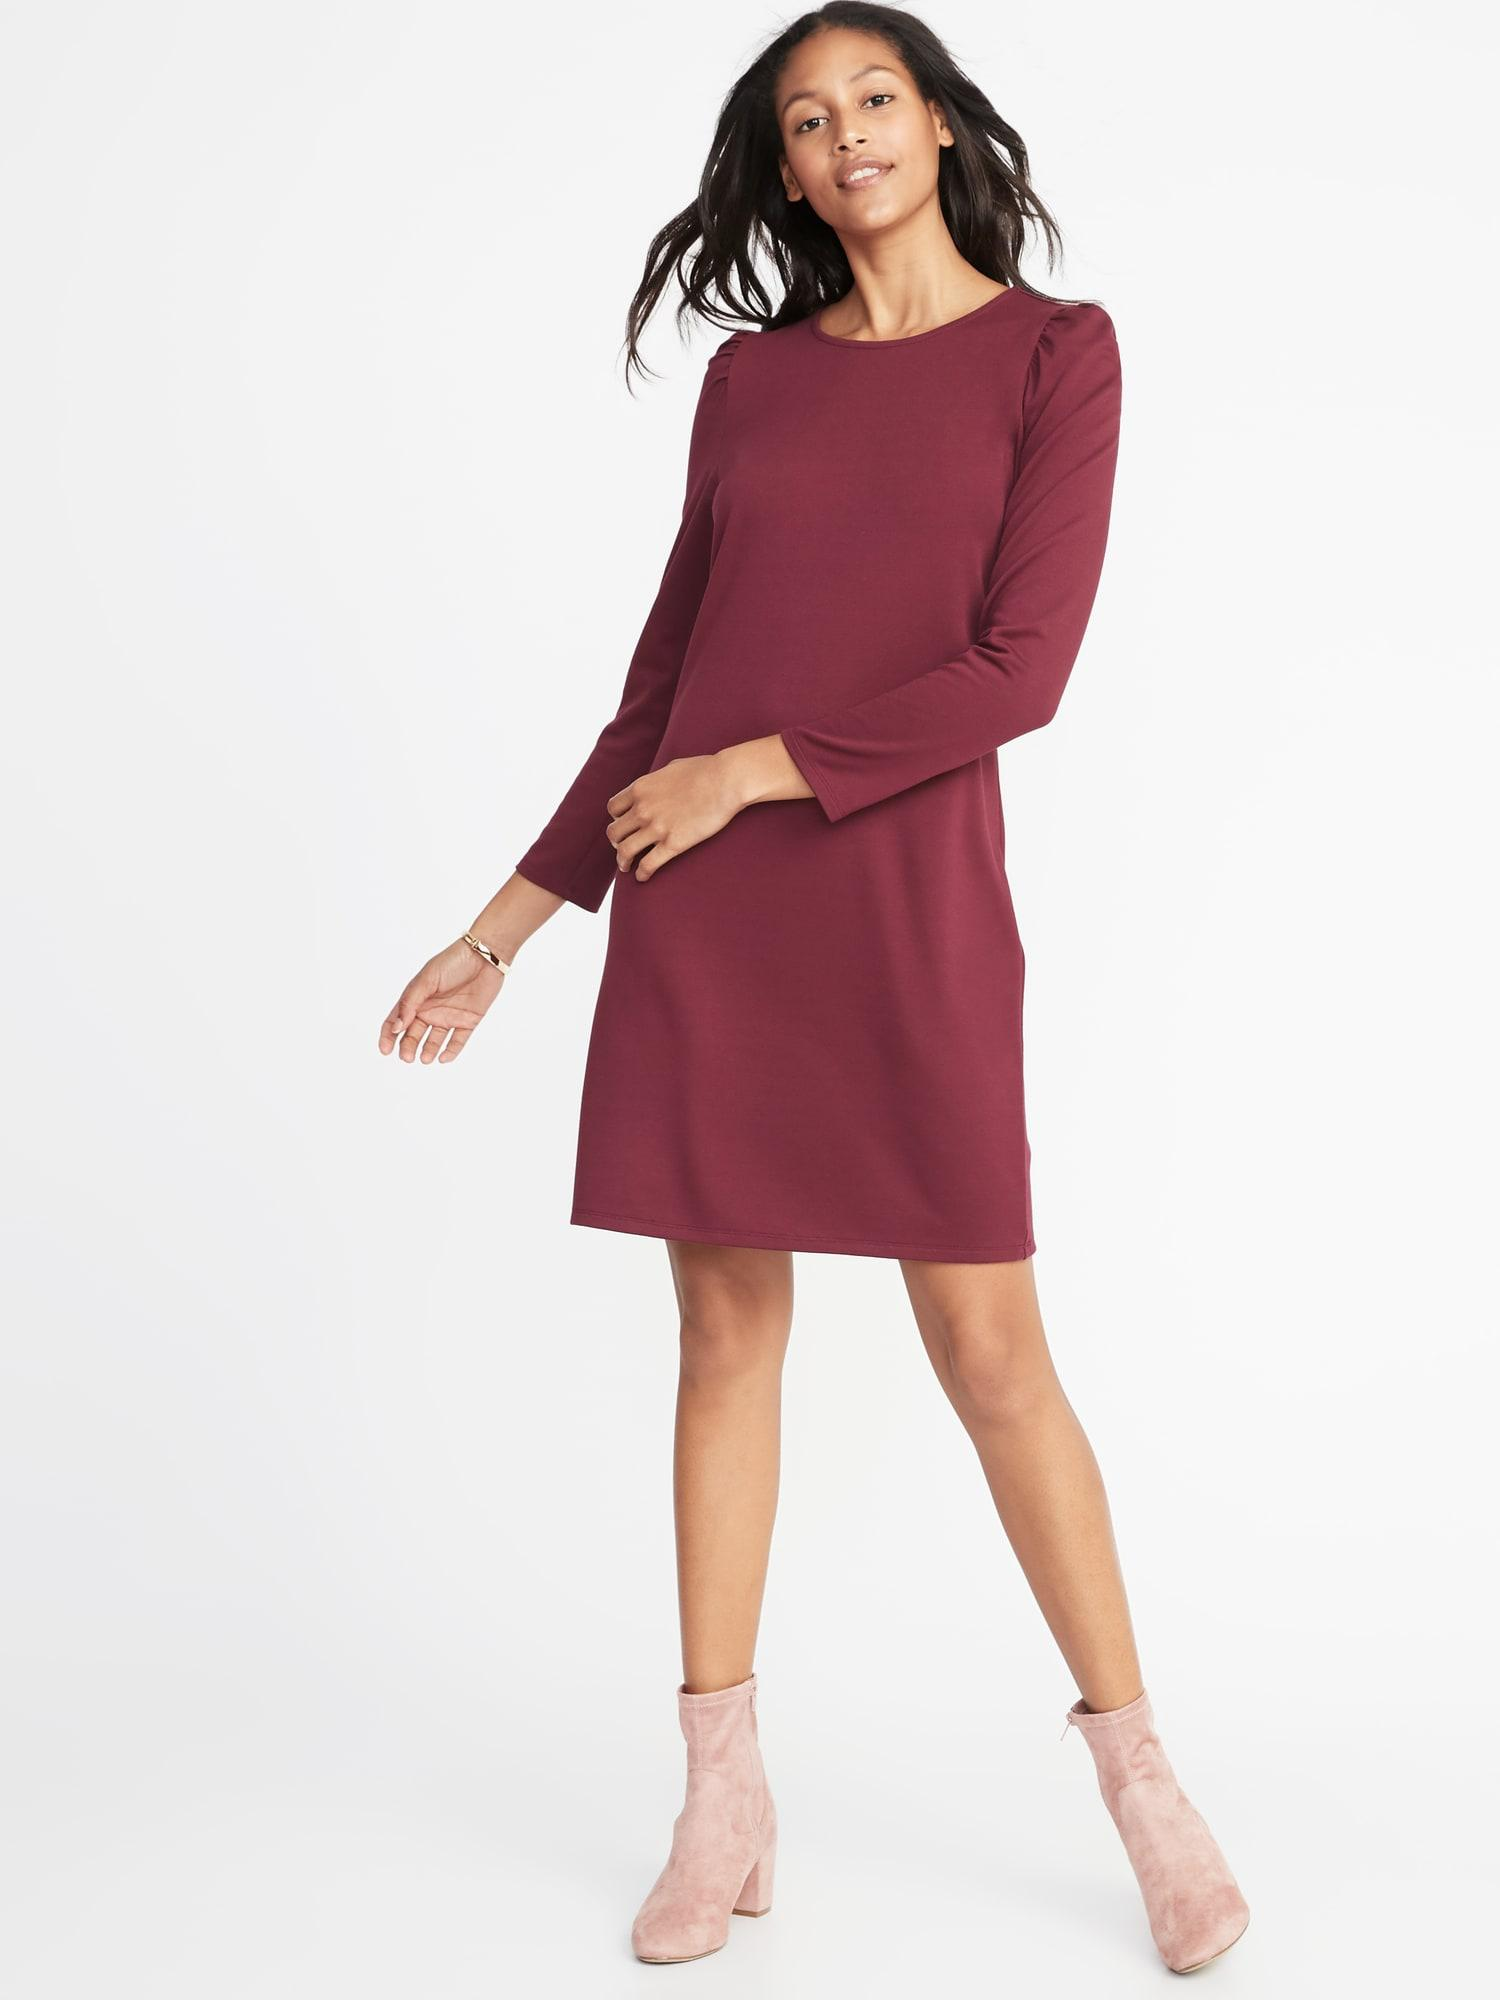 835effe89f4 Lyst - Old Navy Ponte-knit Shift Dress in Red